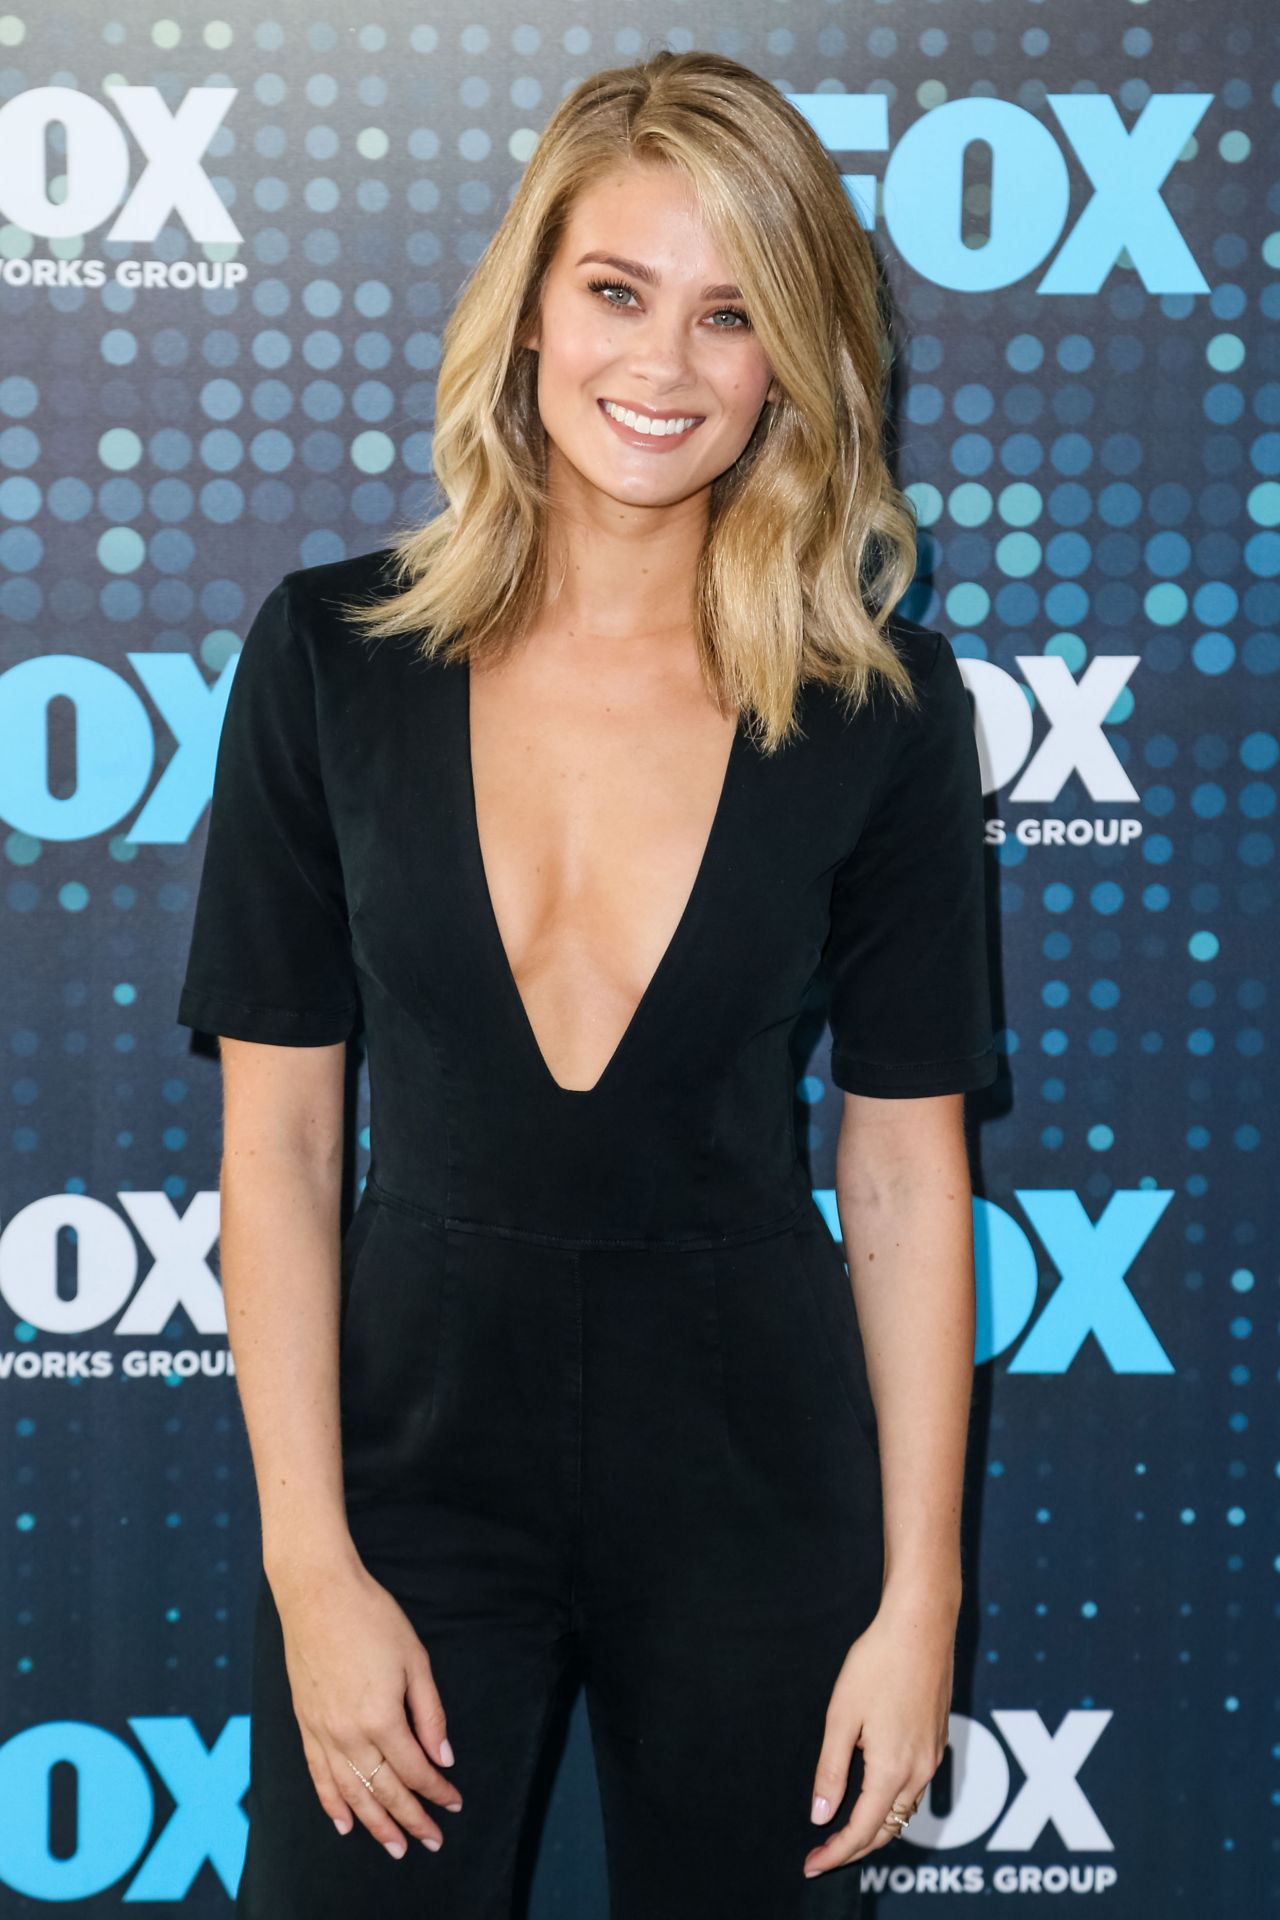 Kim Matula Fox Upfront Presentation In Nyc 05 15 2017